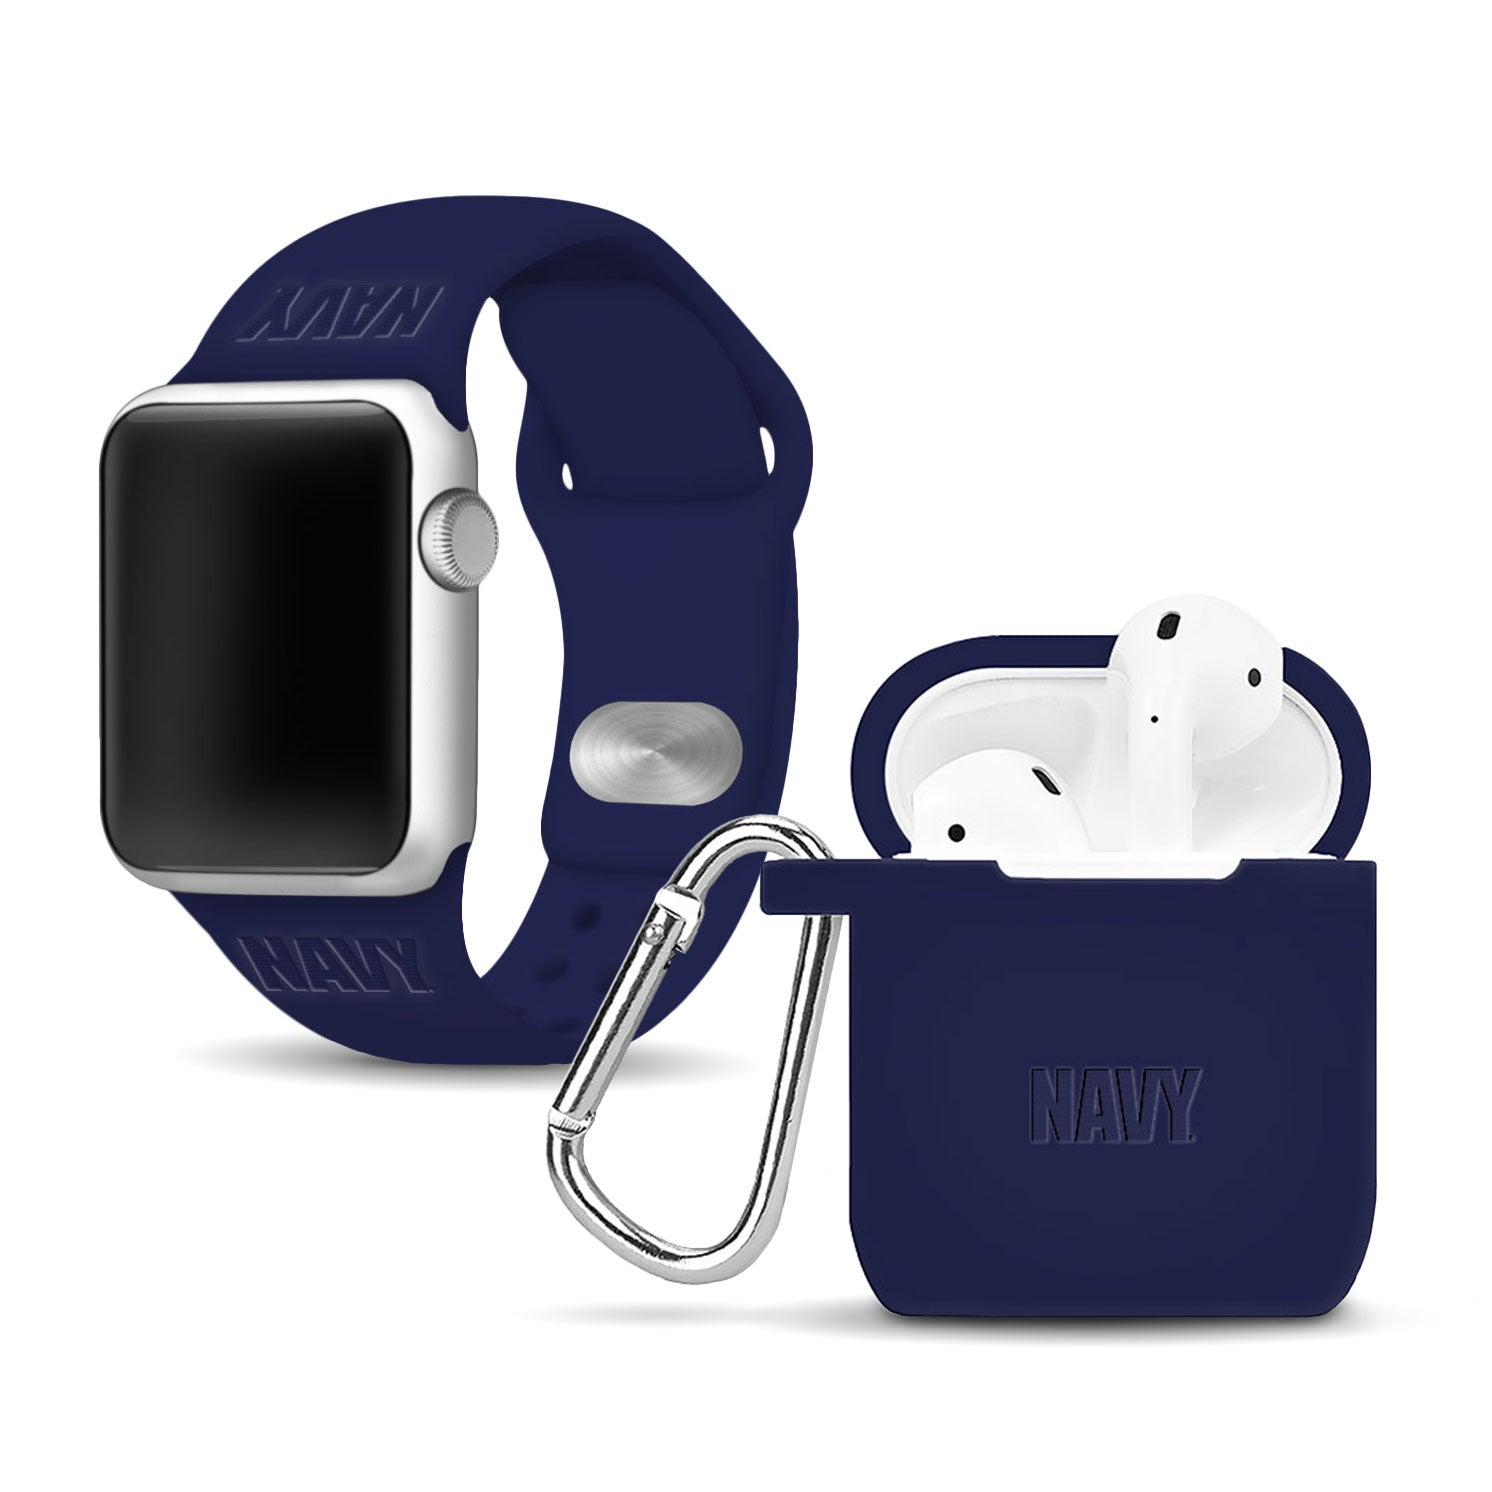 U.S. Navy Debossed Apple Combo Package - AffinityBands